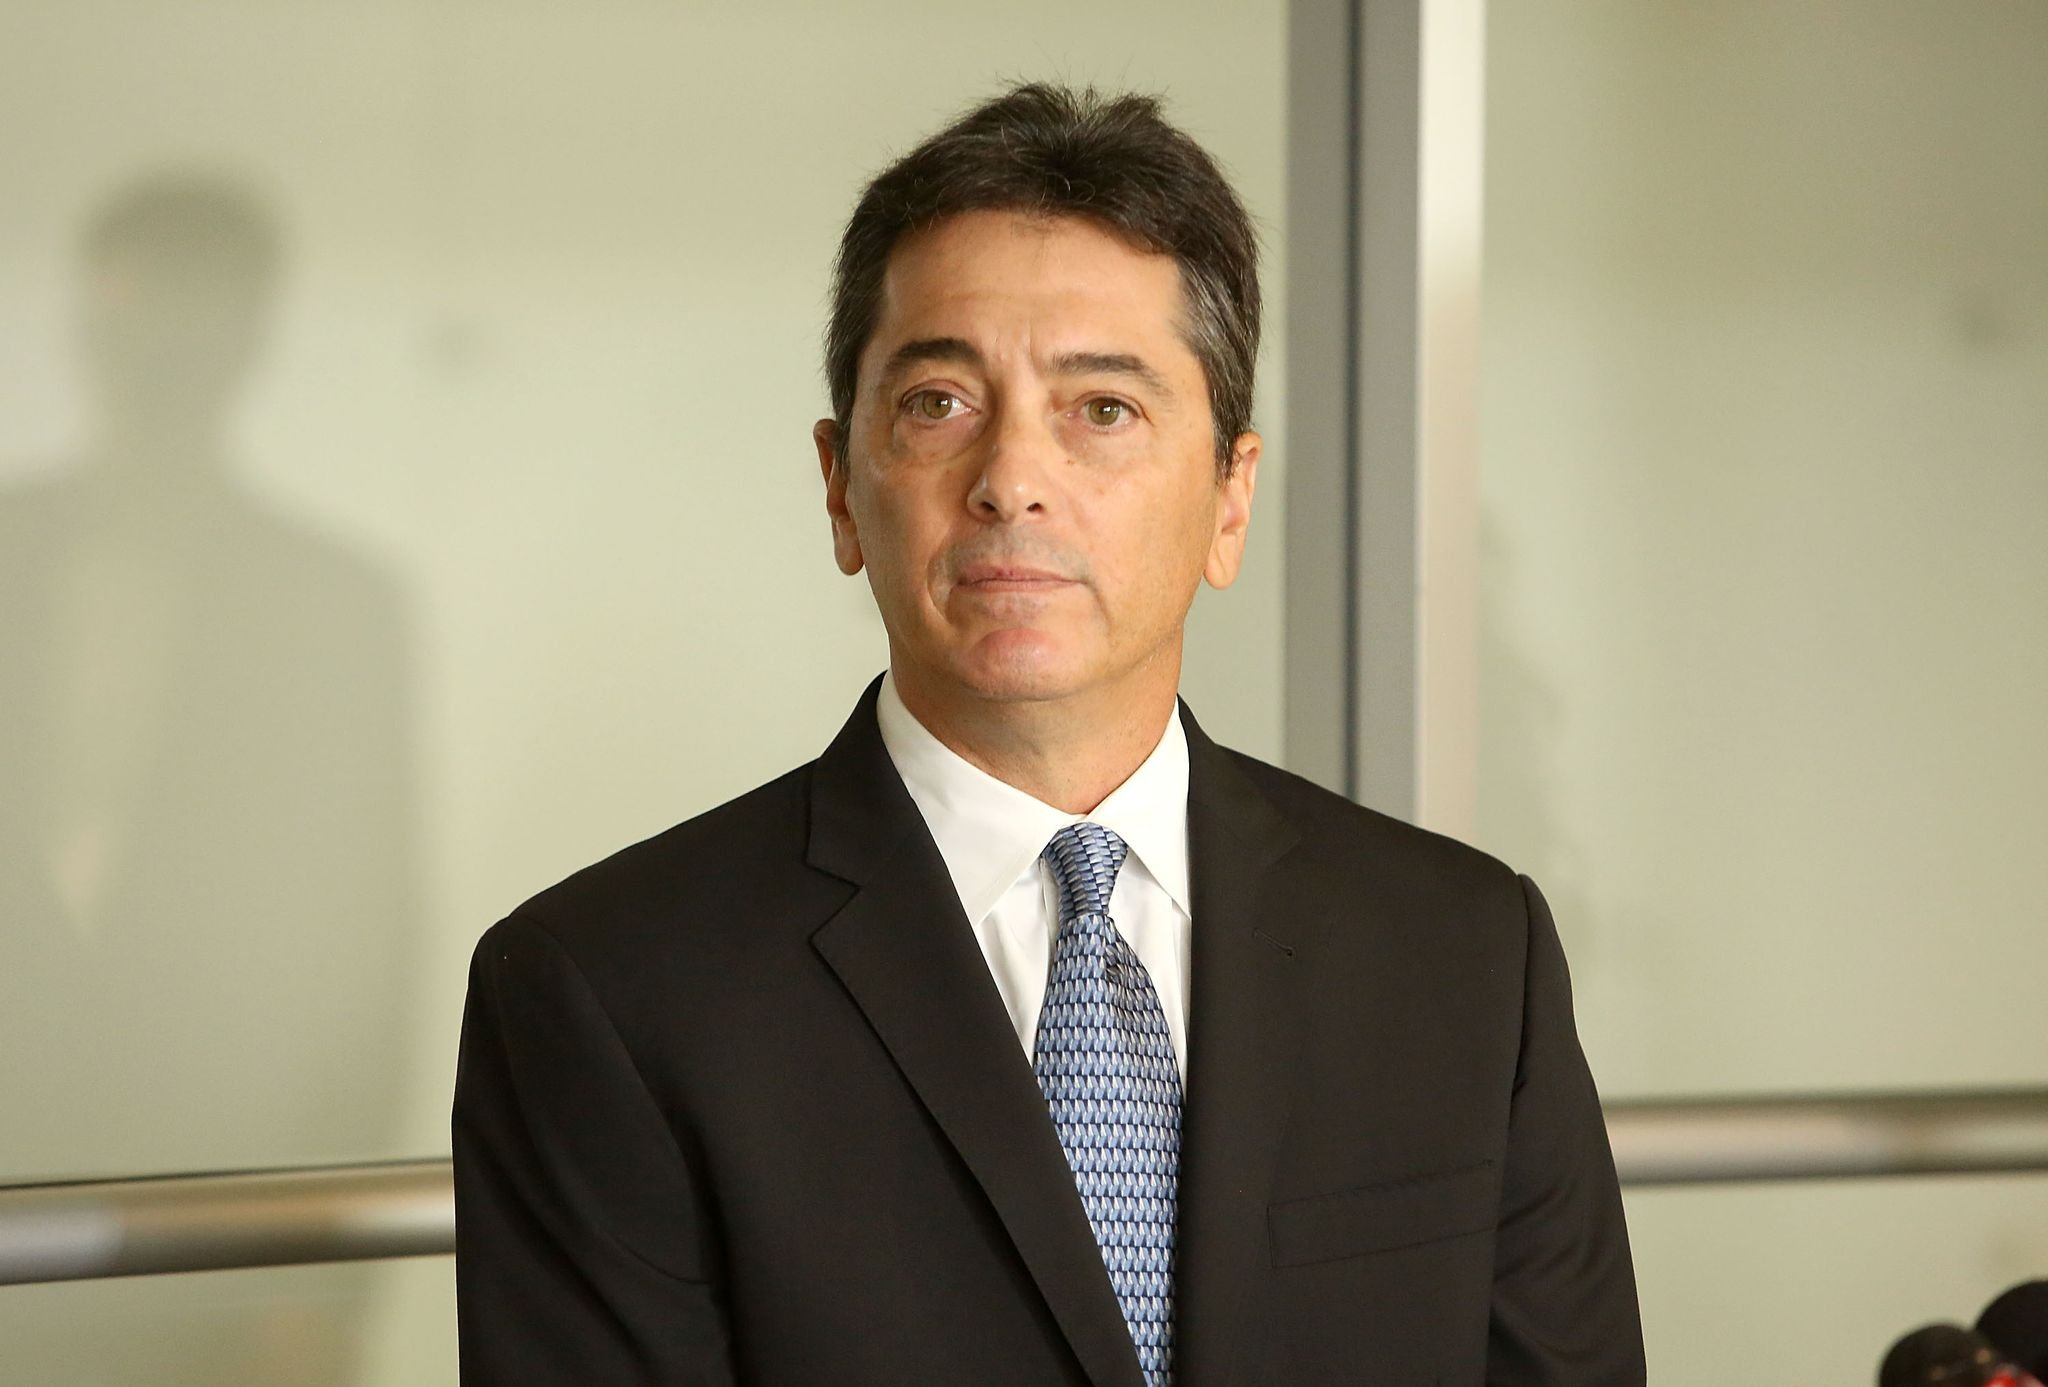 Scott Baio attends a news conference to discuss harassment allegations  | Getty Images / Global Images Ukraine